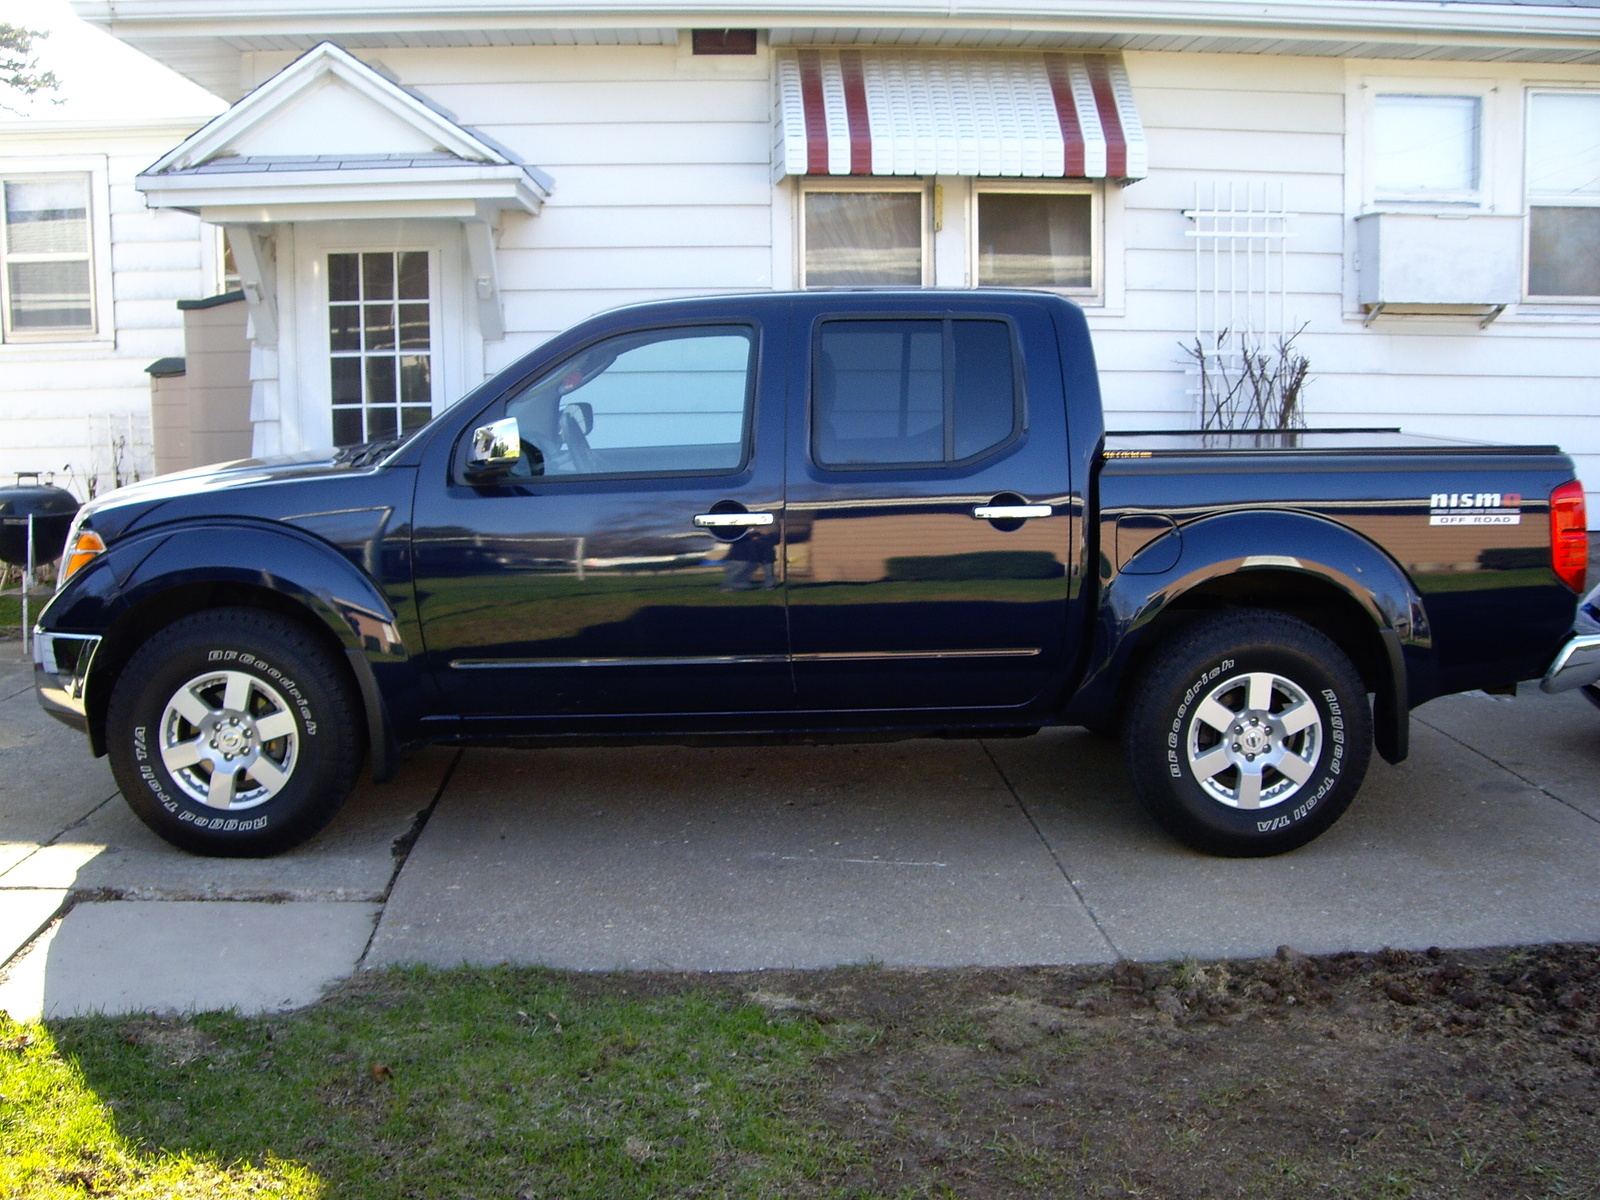 2006 nissan frontier information and photos momentcar nissan frontier 2006 3 nissan frontier 2006 3 vanachro Gallery